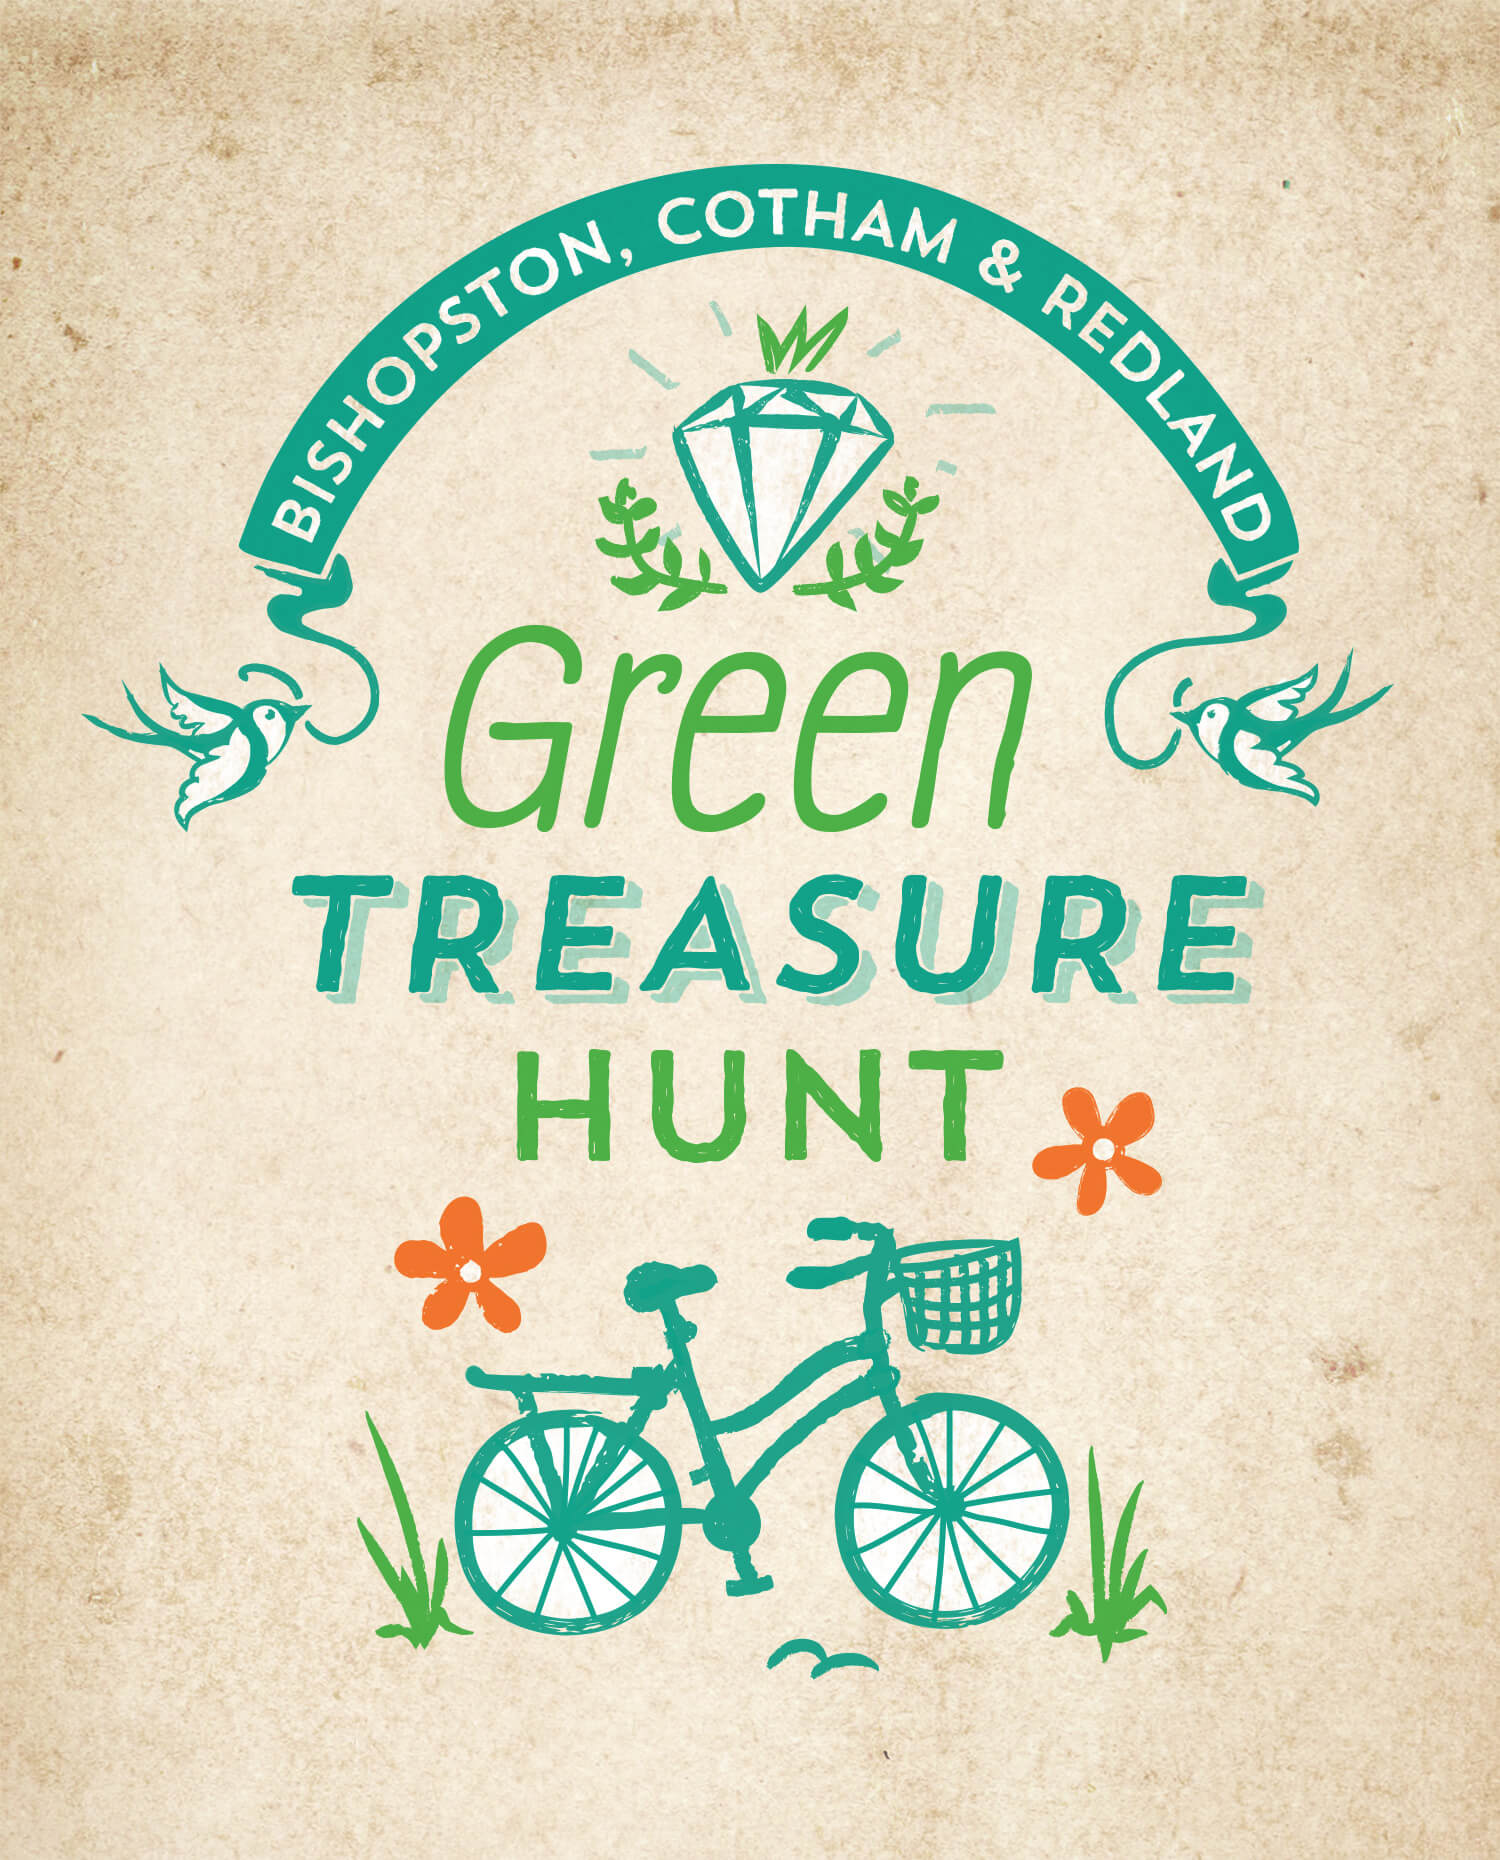 GreenTreasureHunt_logo